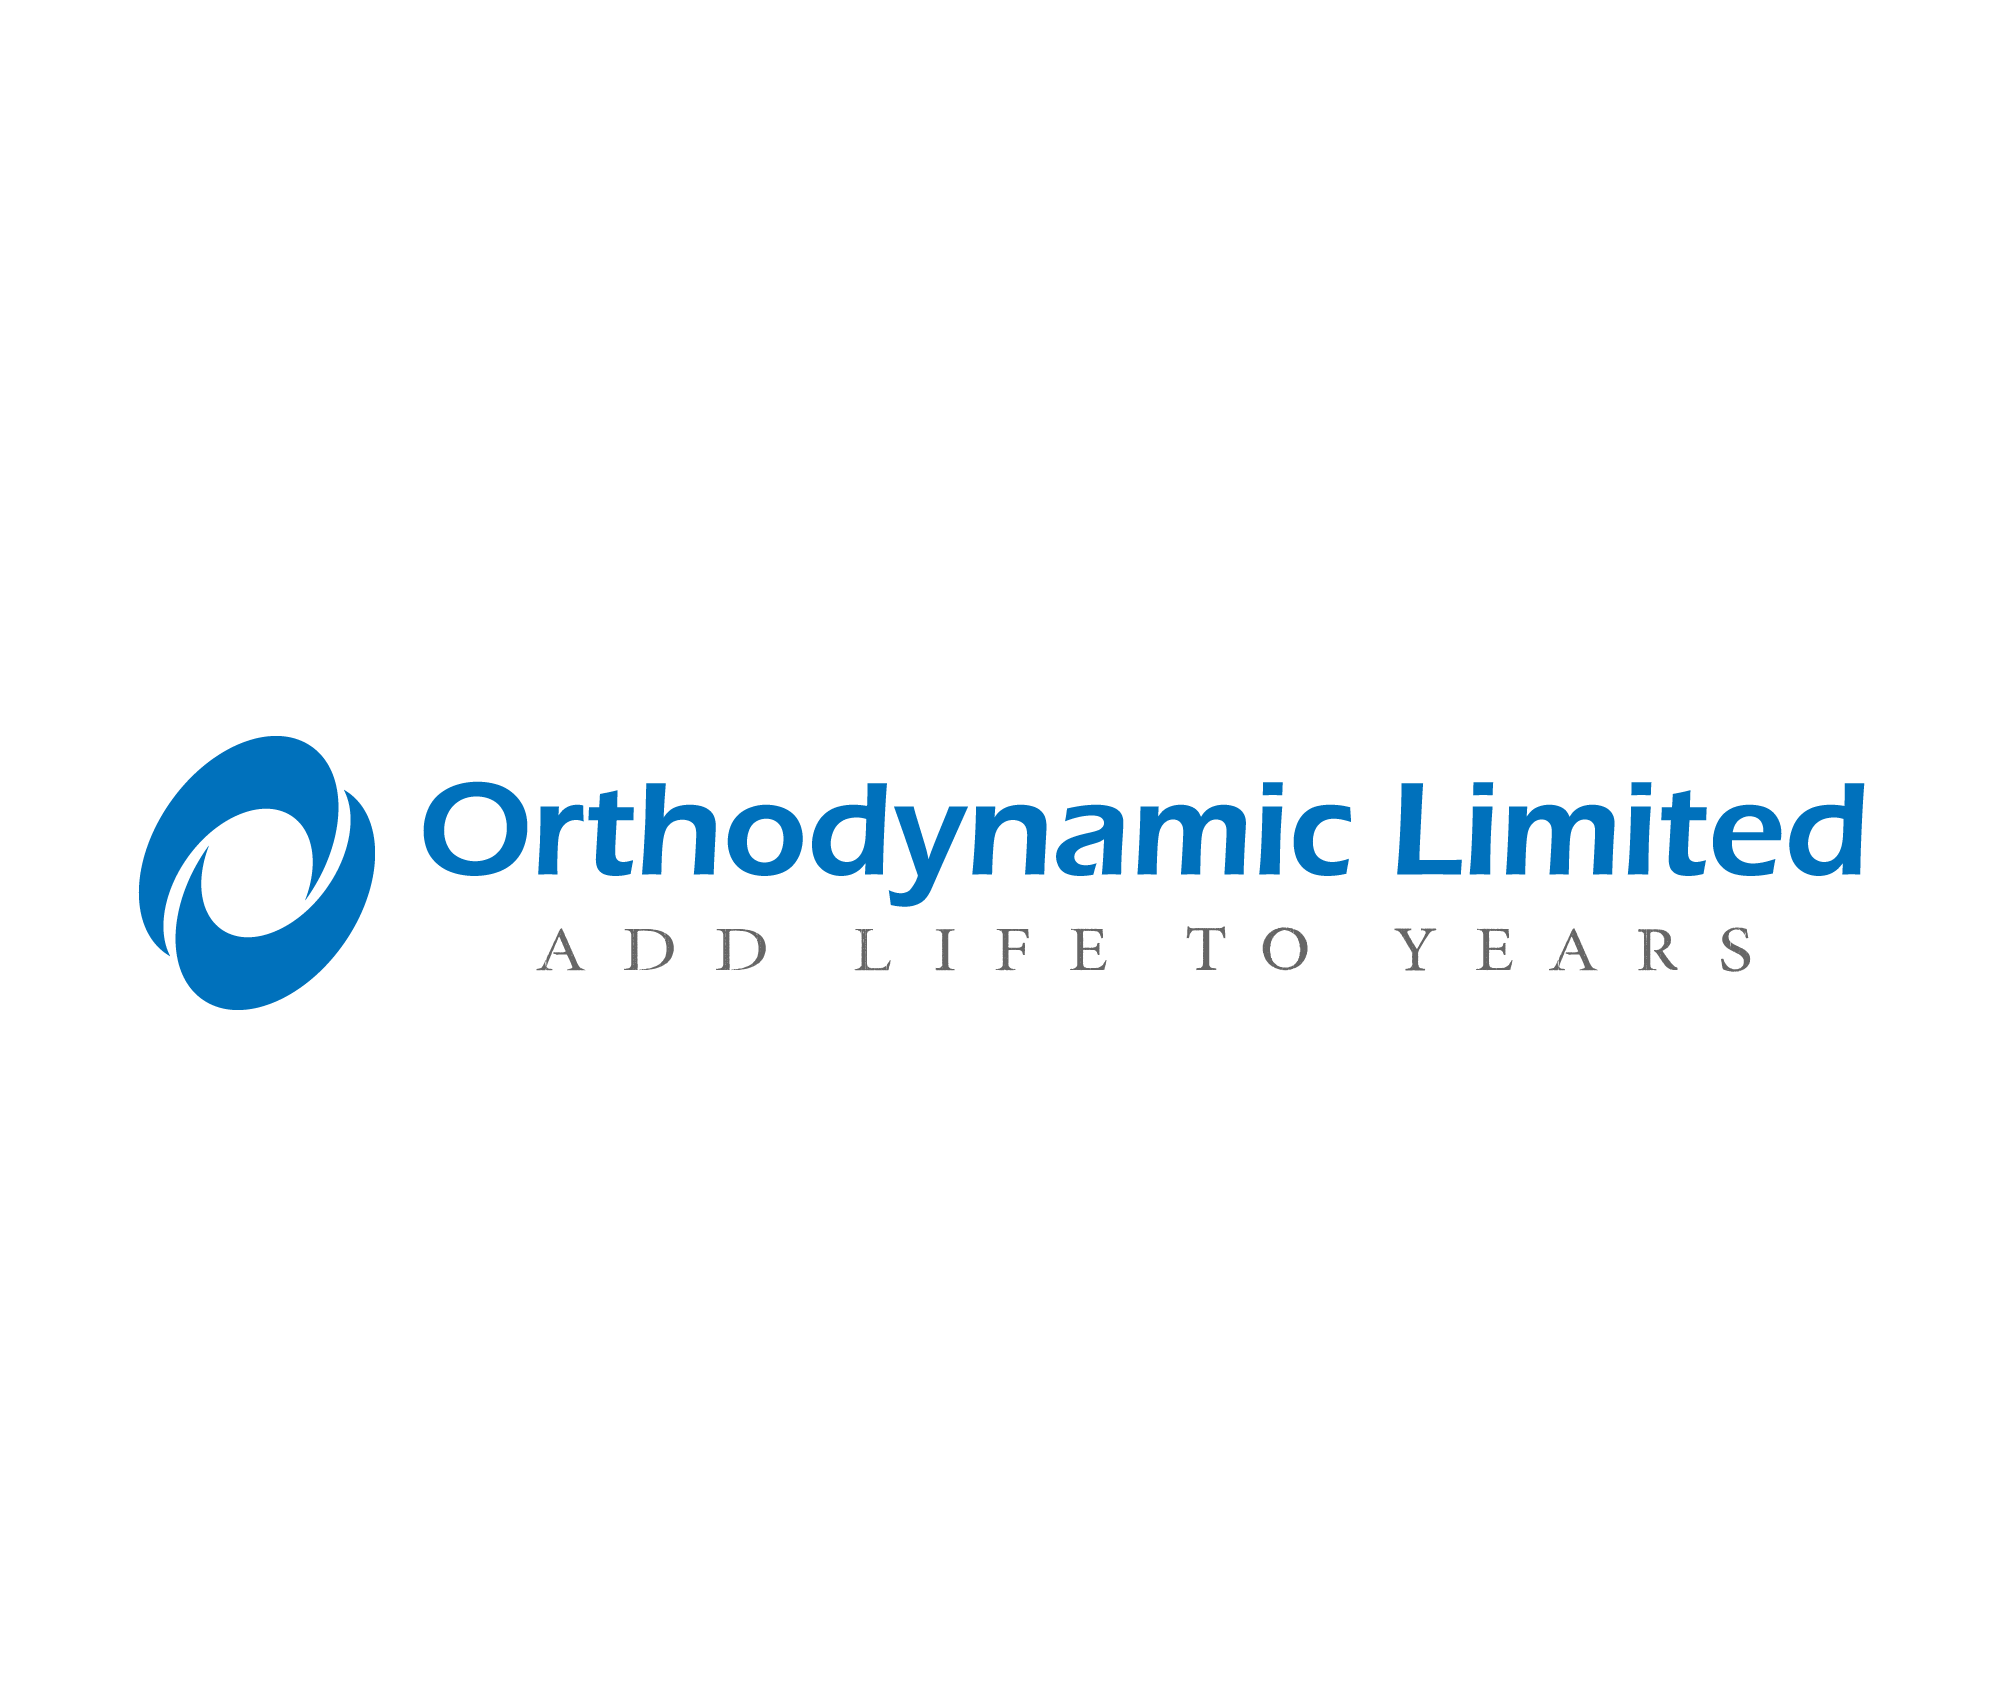 Orthodynamic Ltd